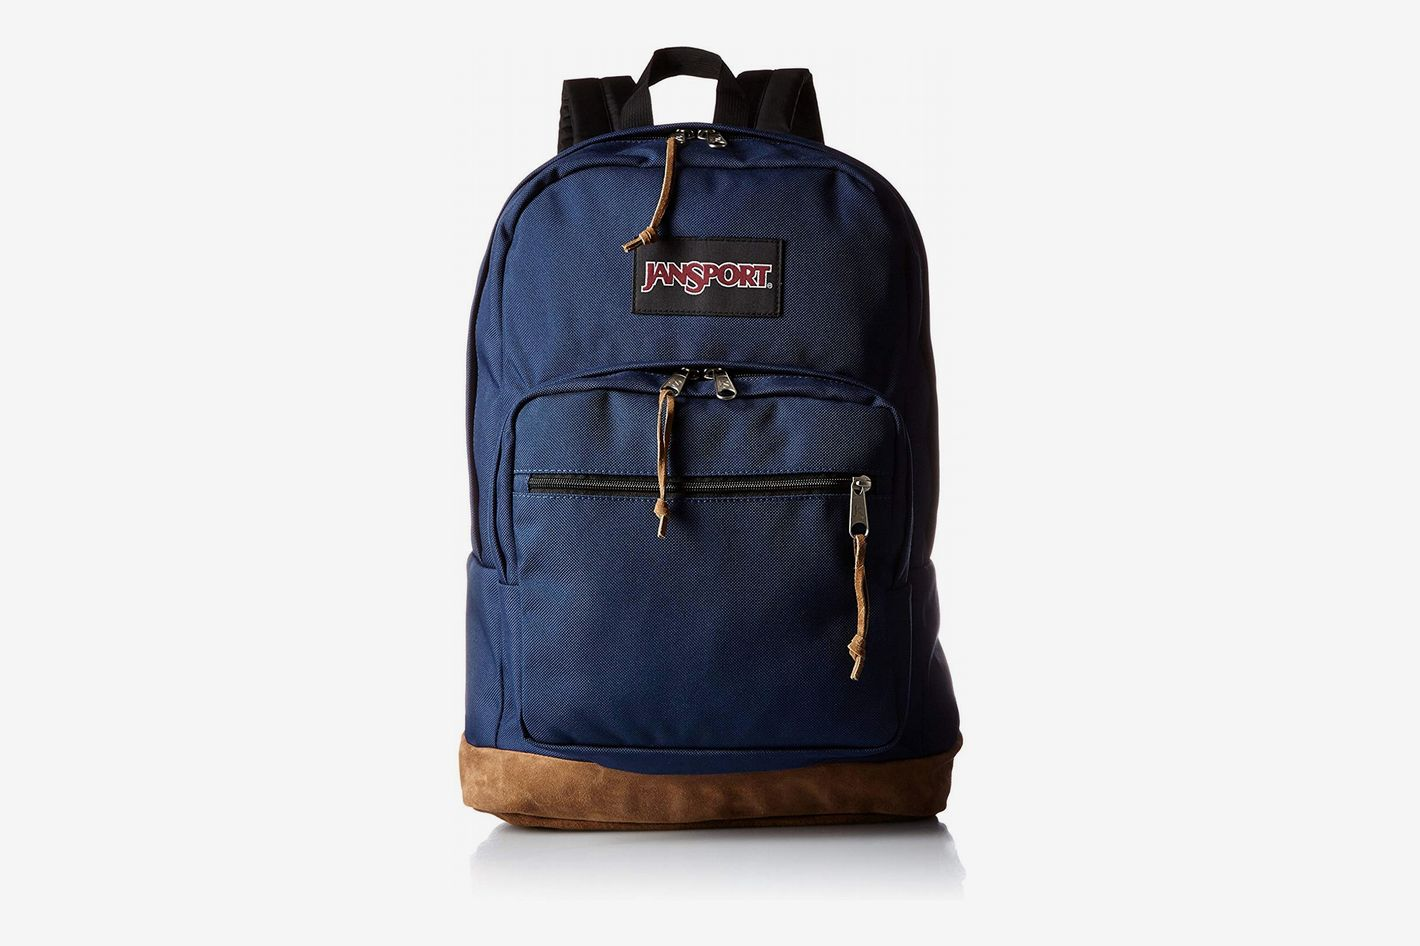 55d9fc99209a The 14 Best Laptop Backpacks on Amazon 2019